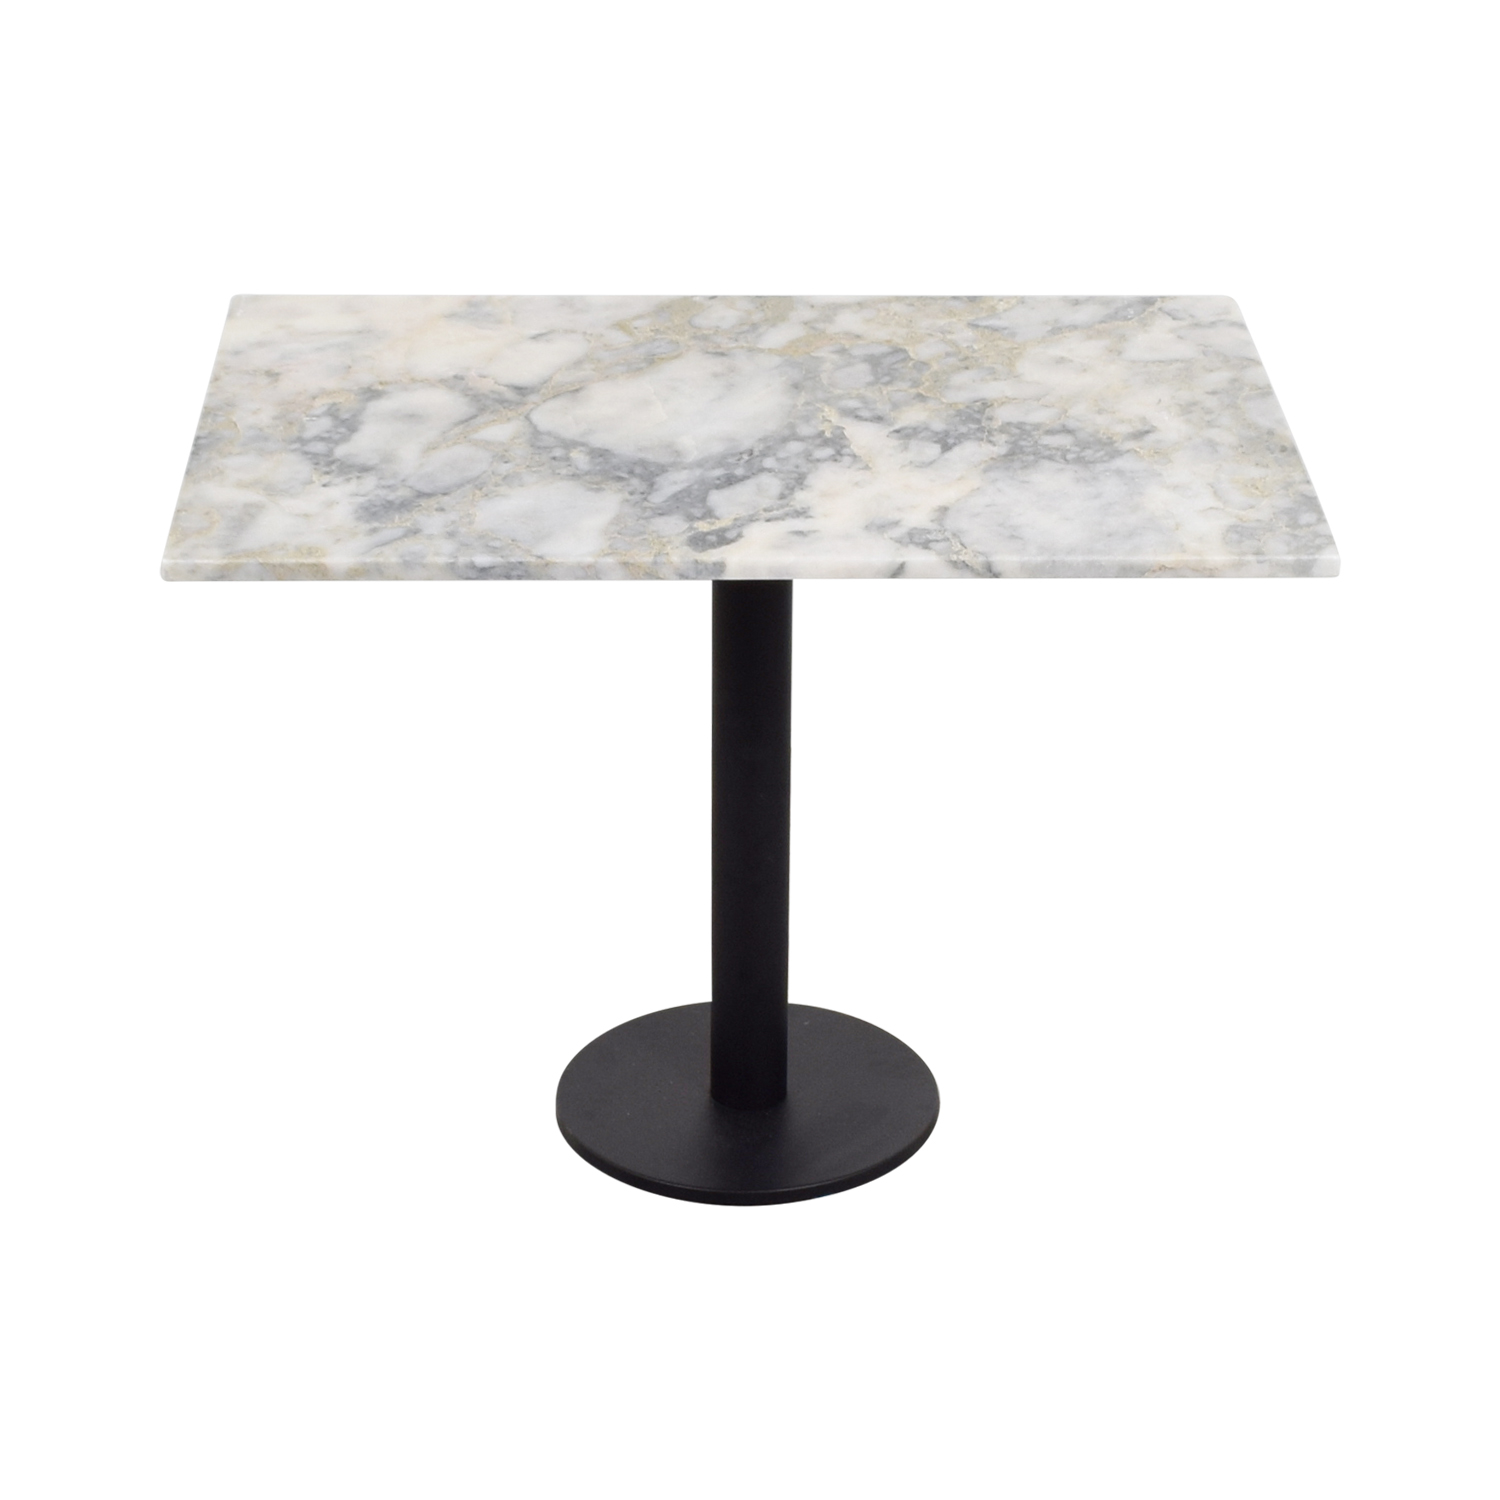 Lotus Lotus White and Gray Rectangular Marble Table used